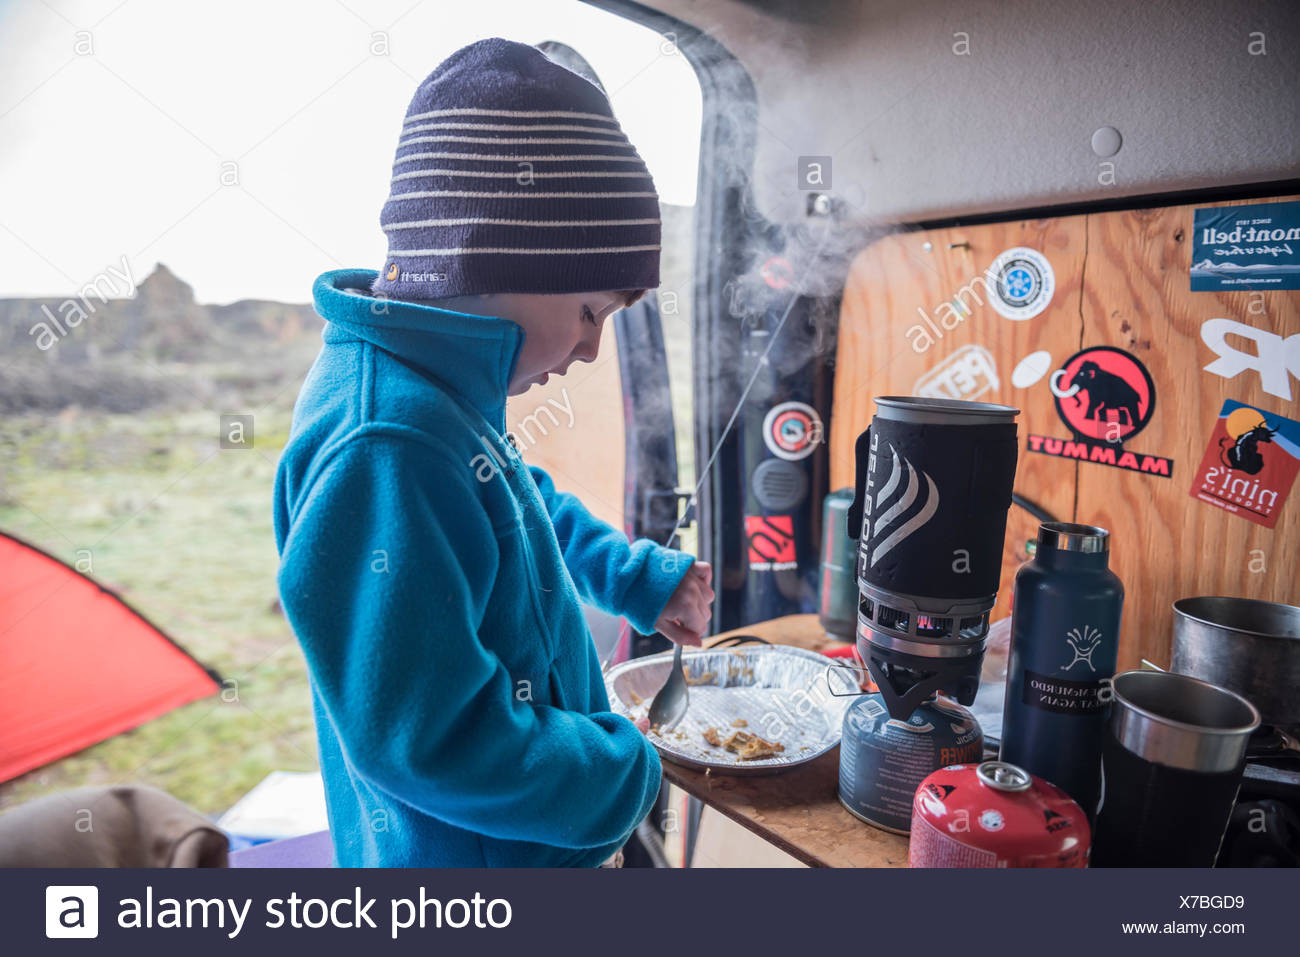 A young boy finishes the last few crumbs of pie crust during a camping trip. - Stock Image